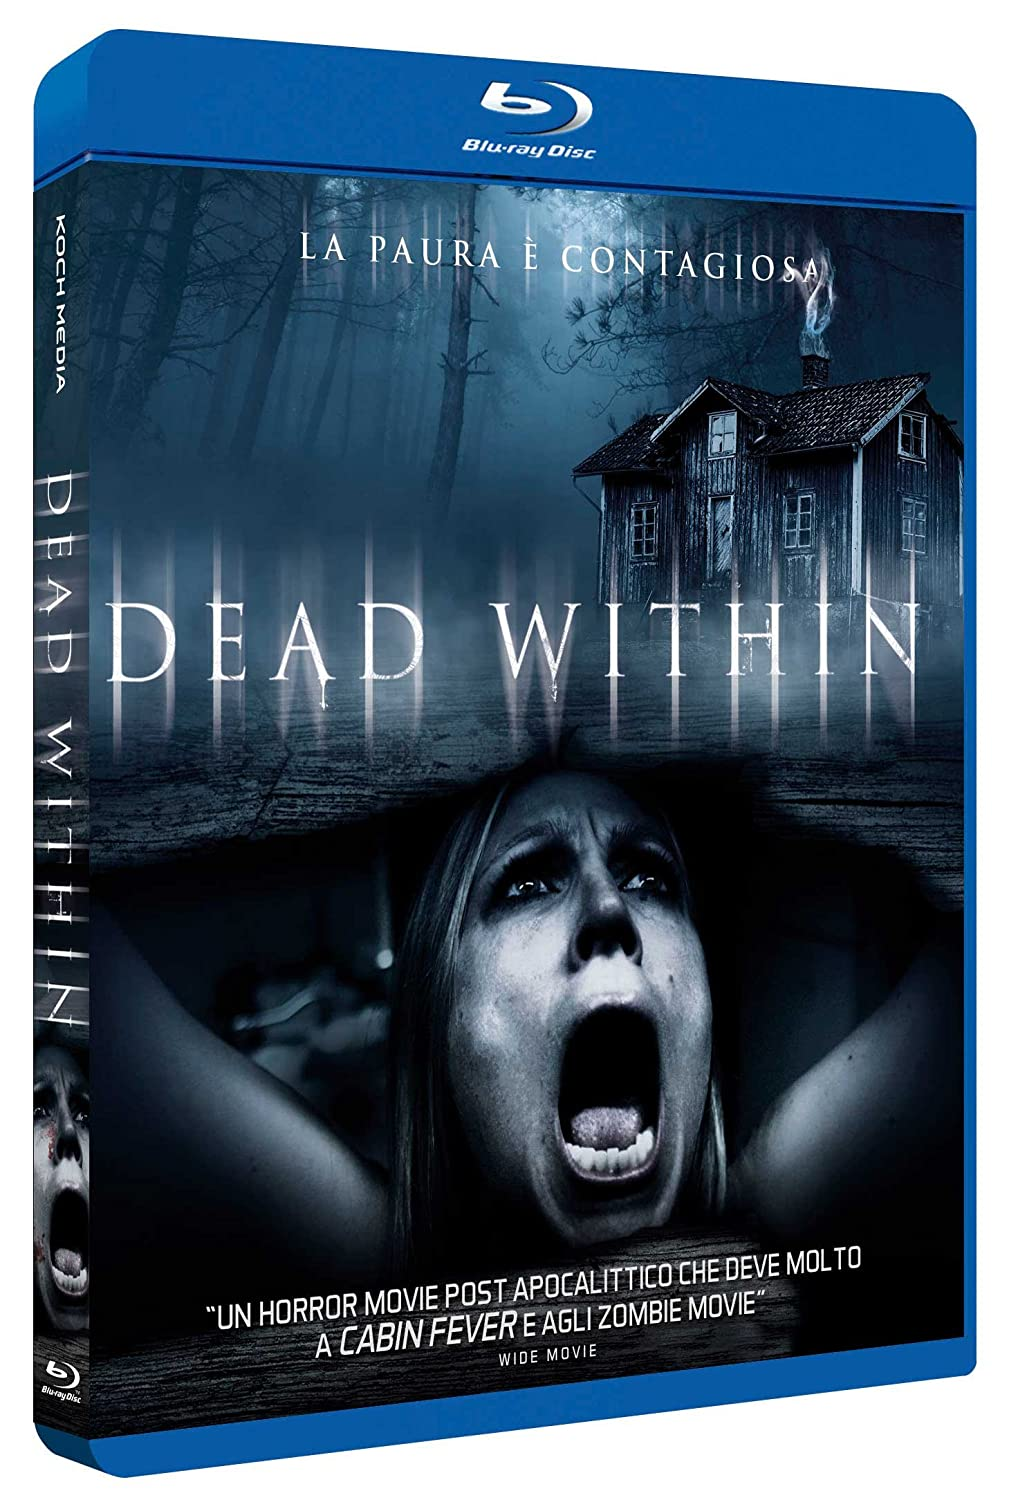 Dead Within (2014) 1080p iTALiAN DTS+AC3 5.1